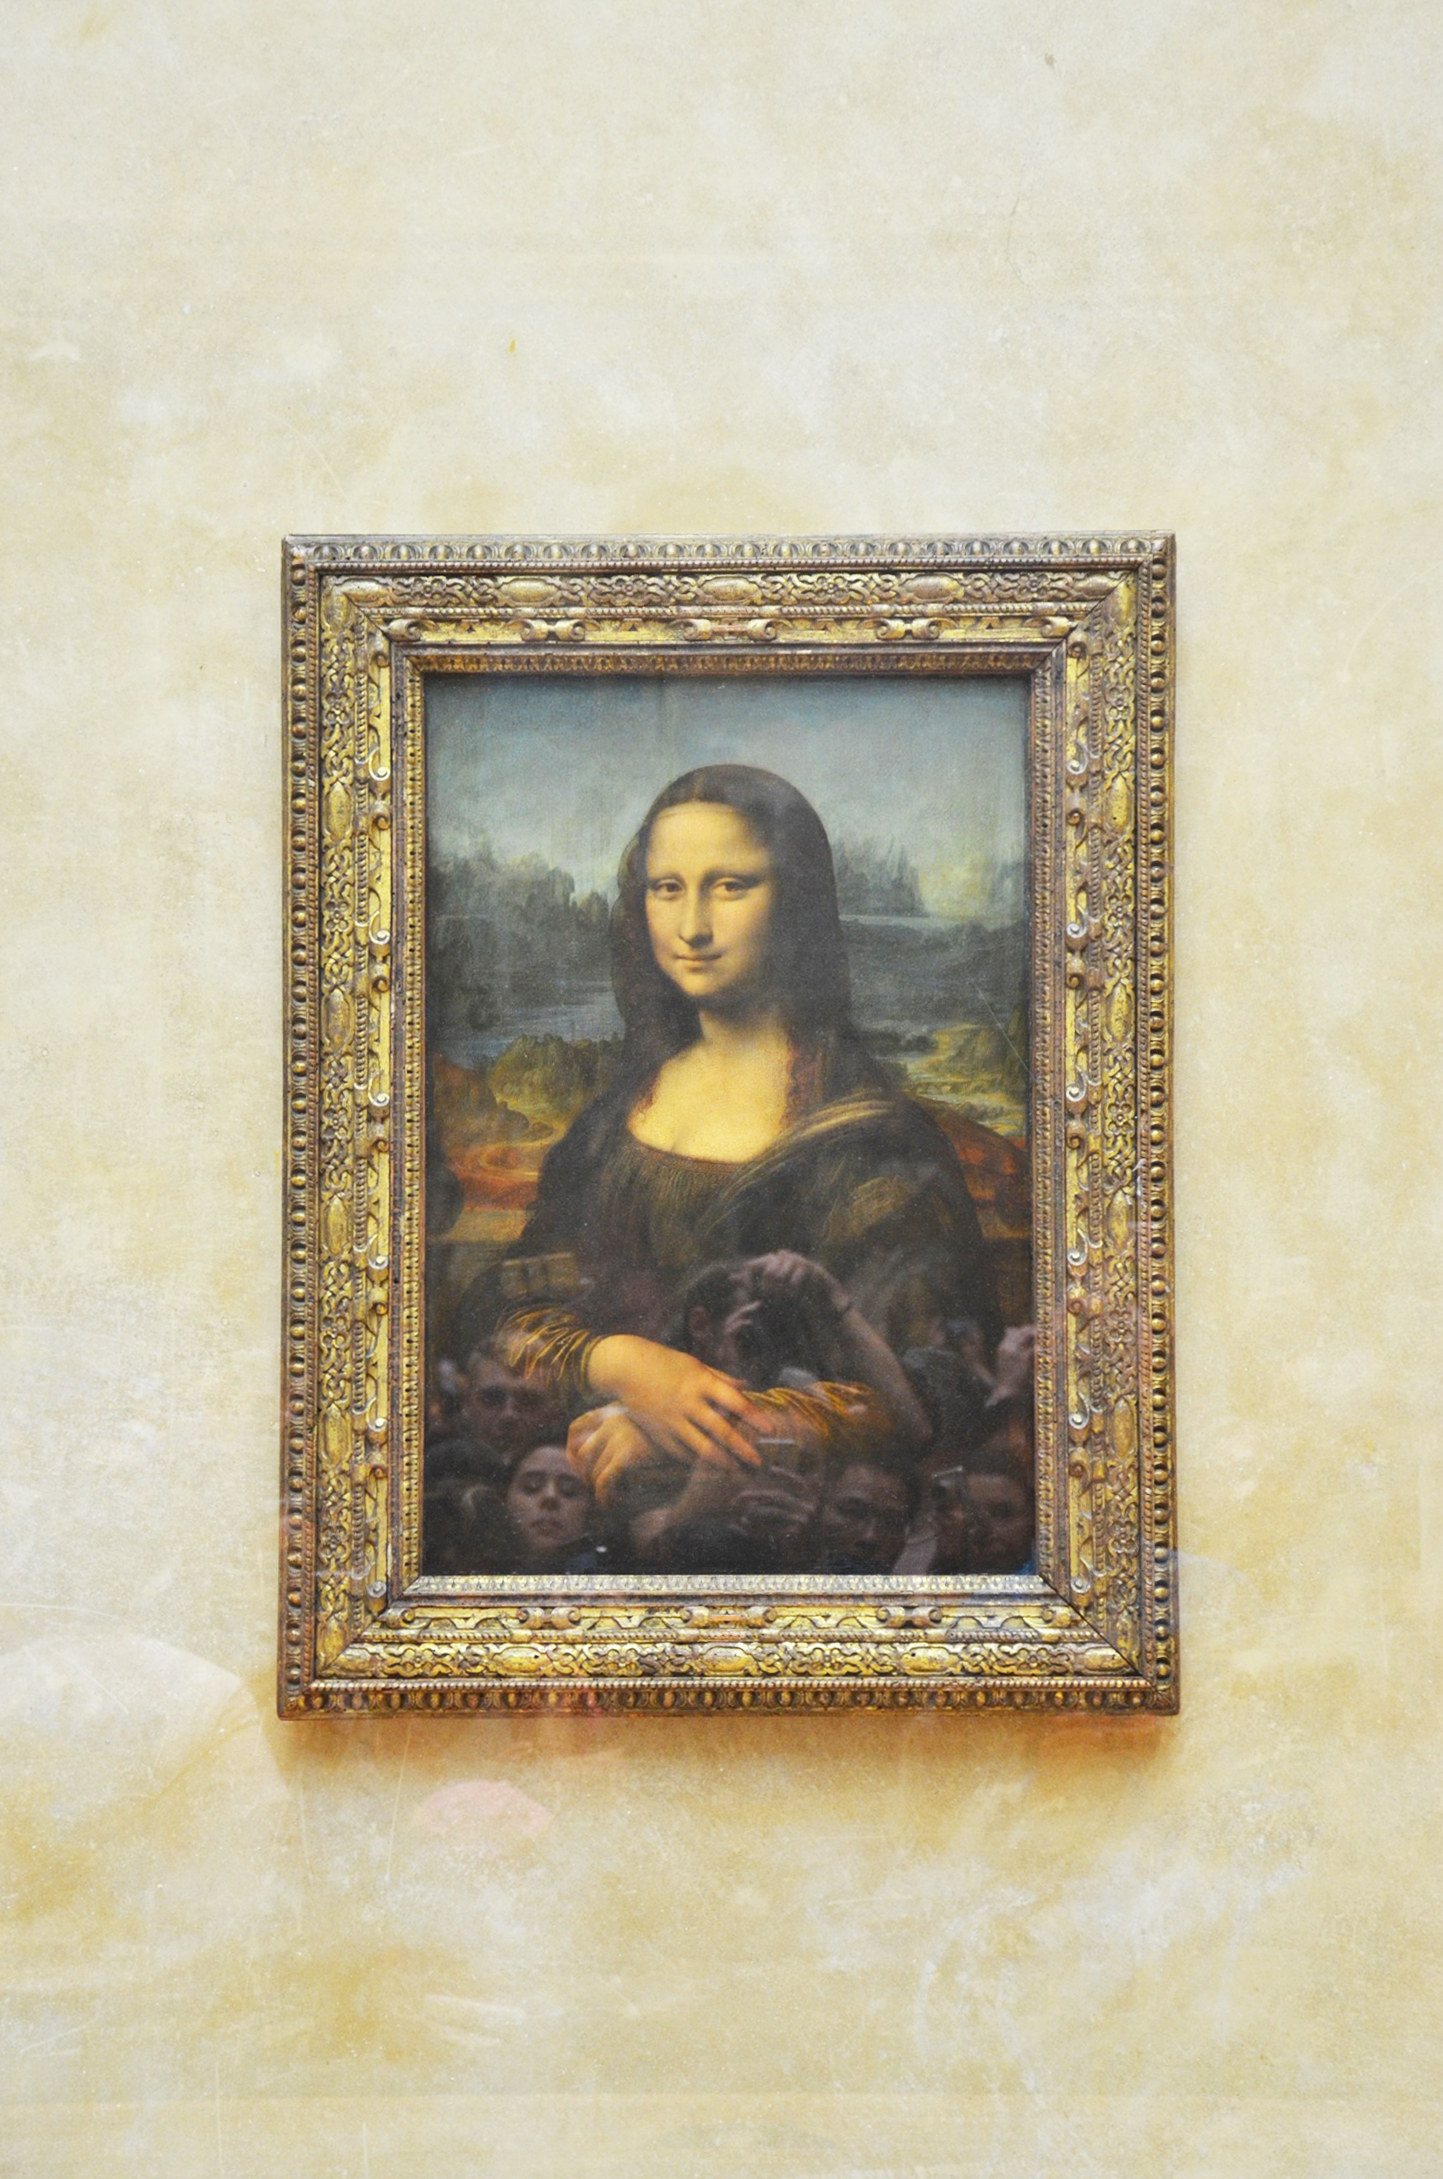 Mona_Lisa_Louvre_Paris.png